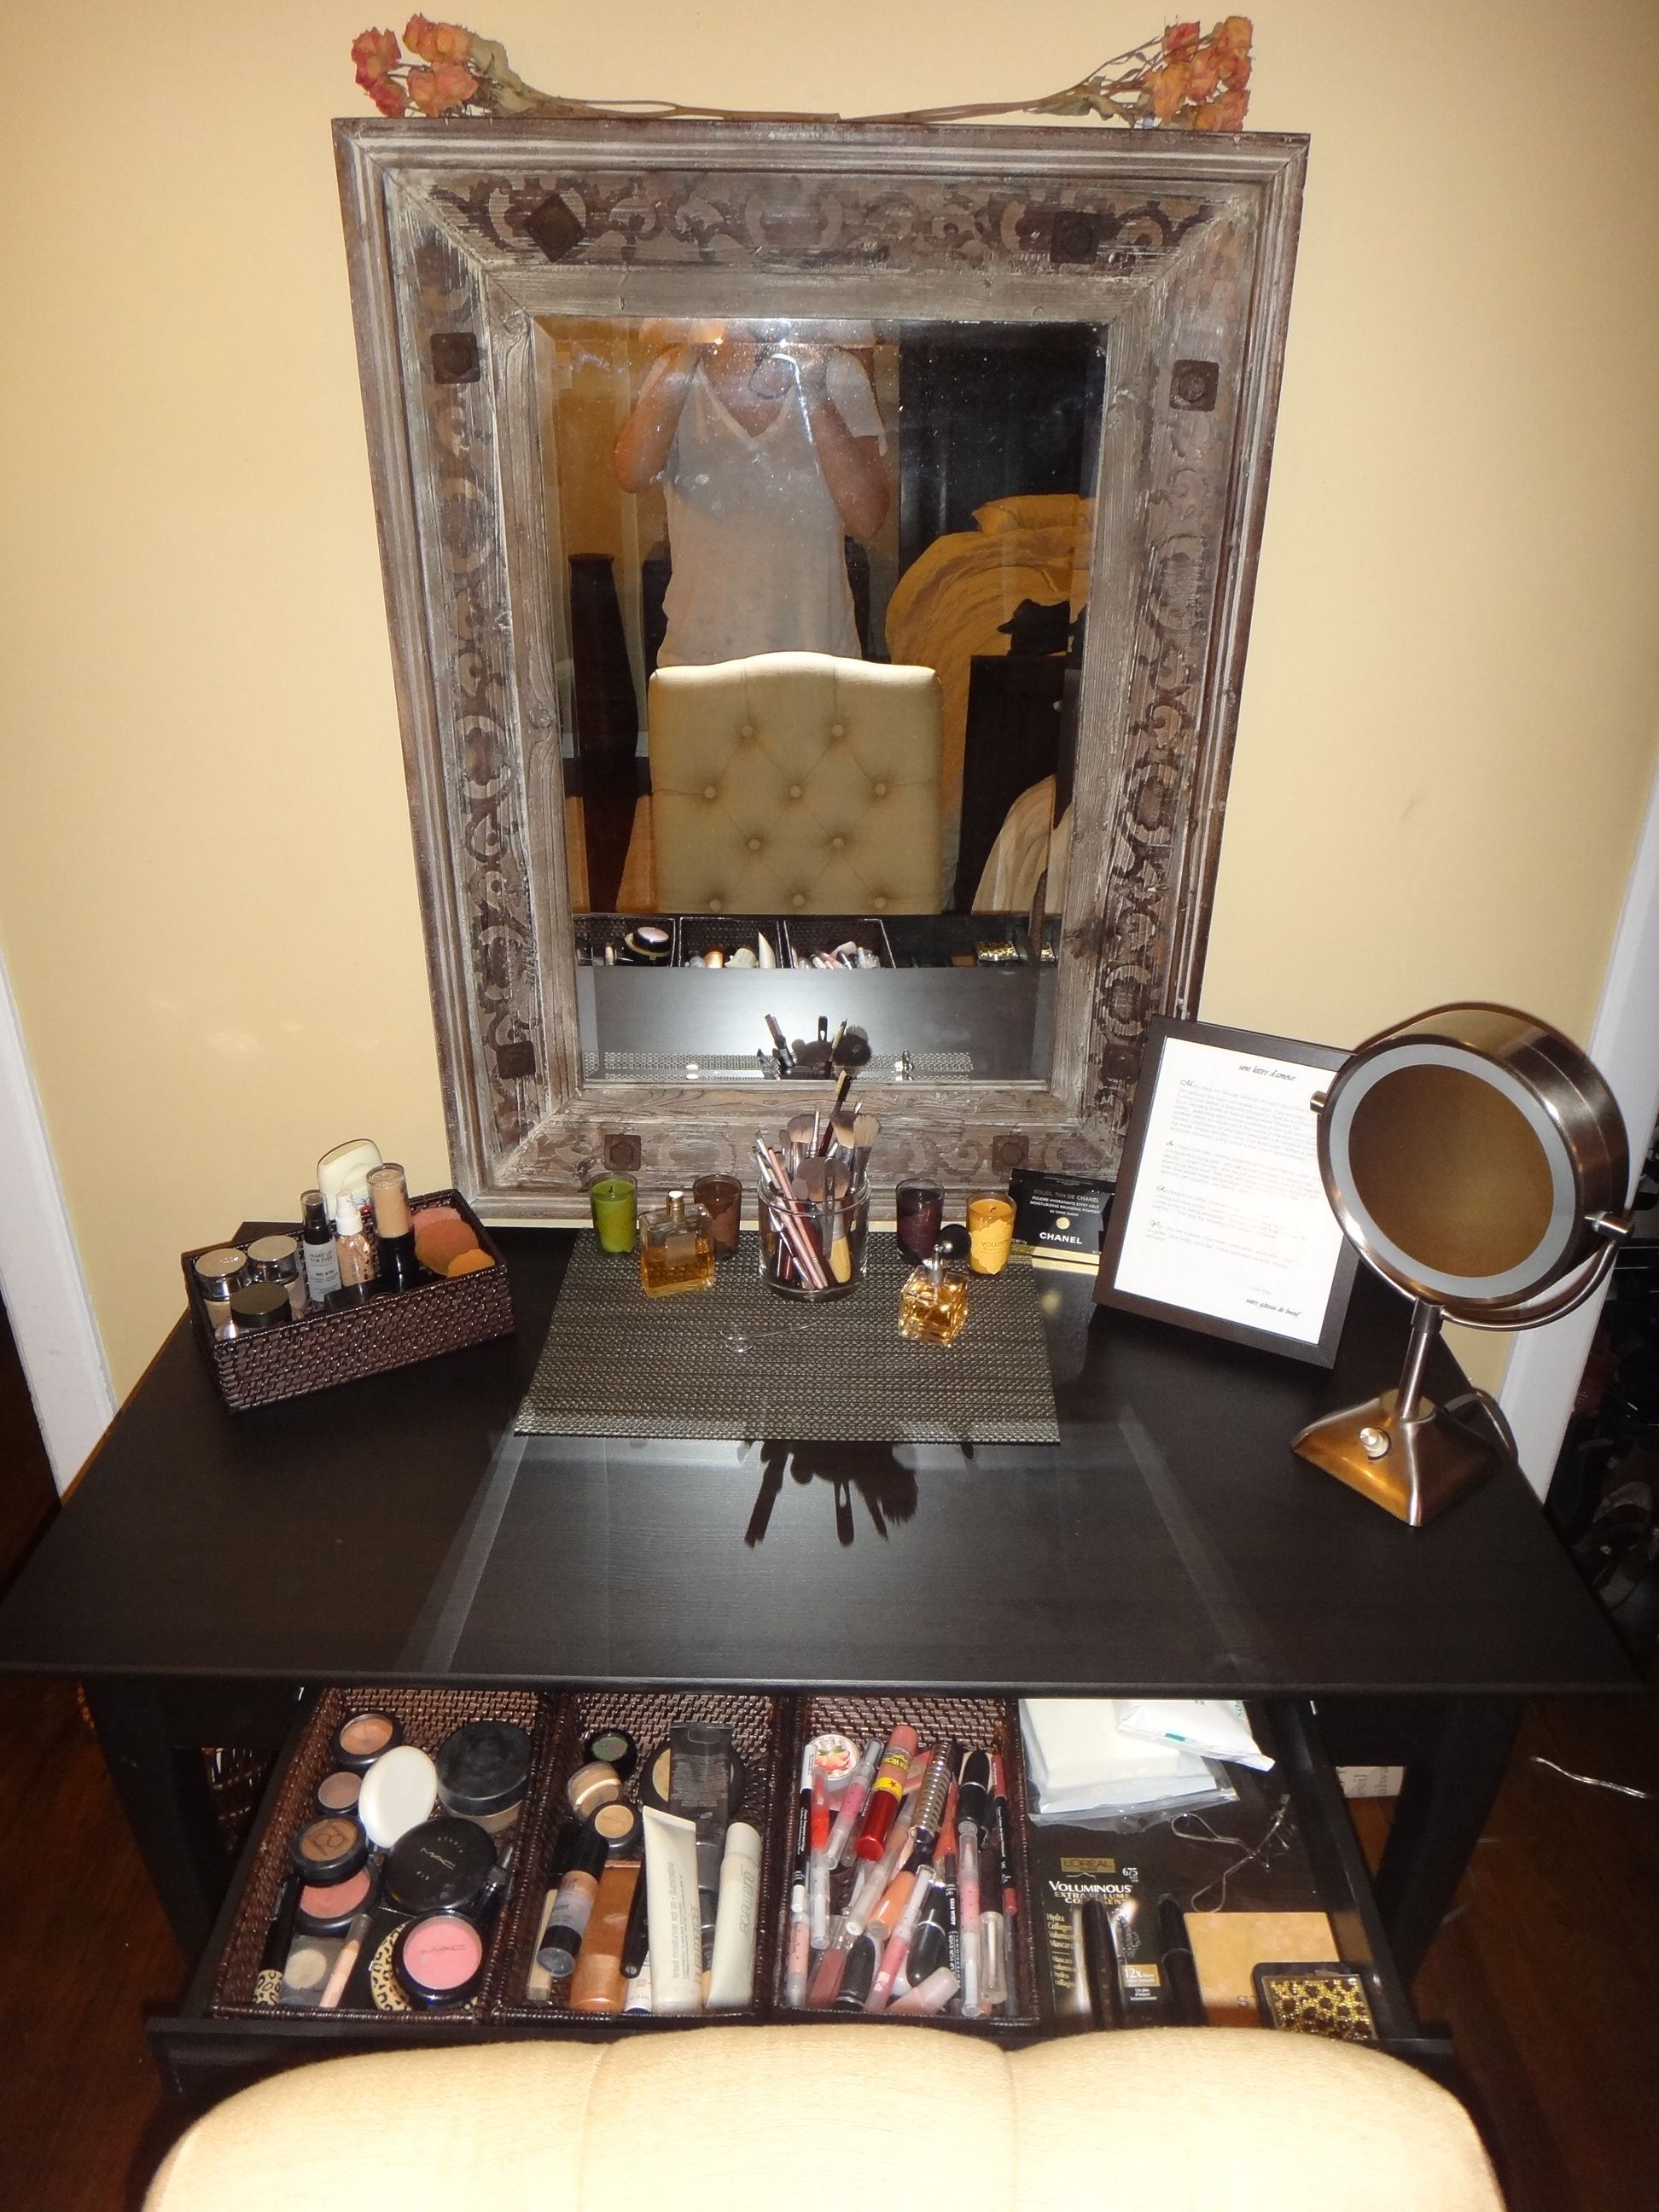 Writing desk from ikea converted into a vanity. Trays from Target ...